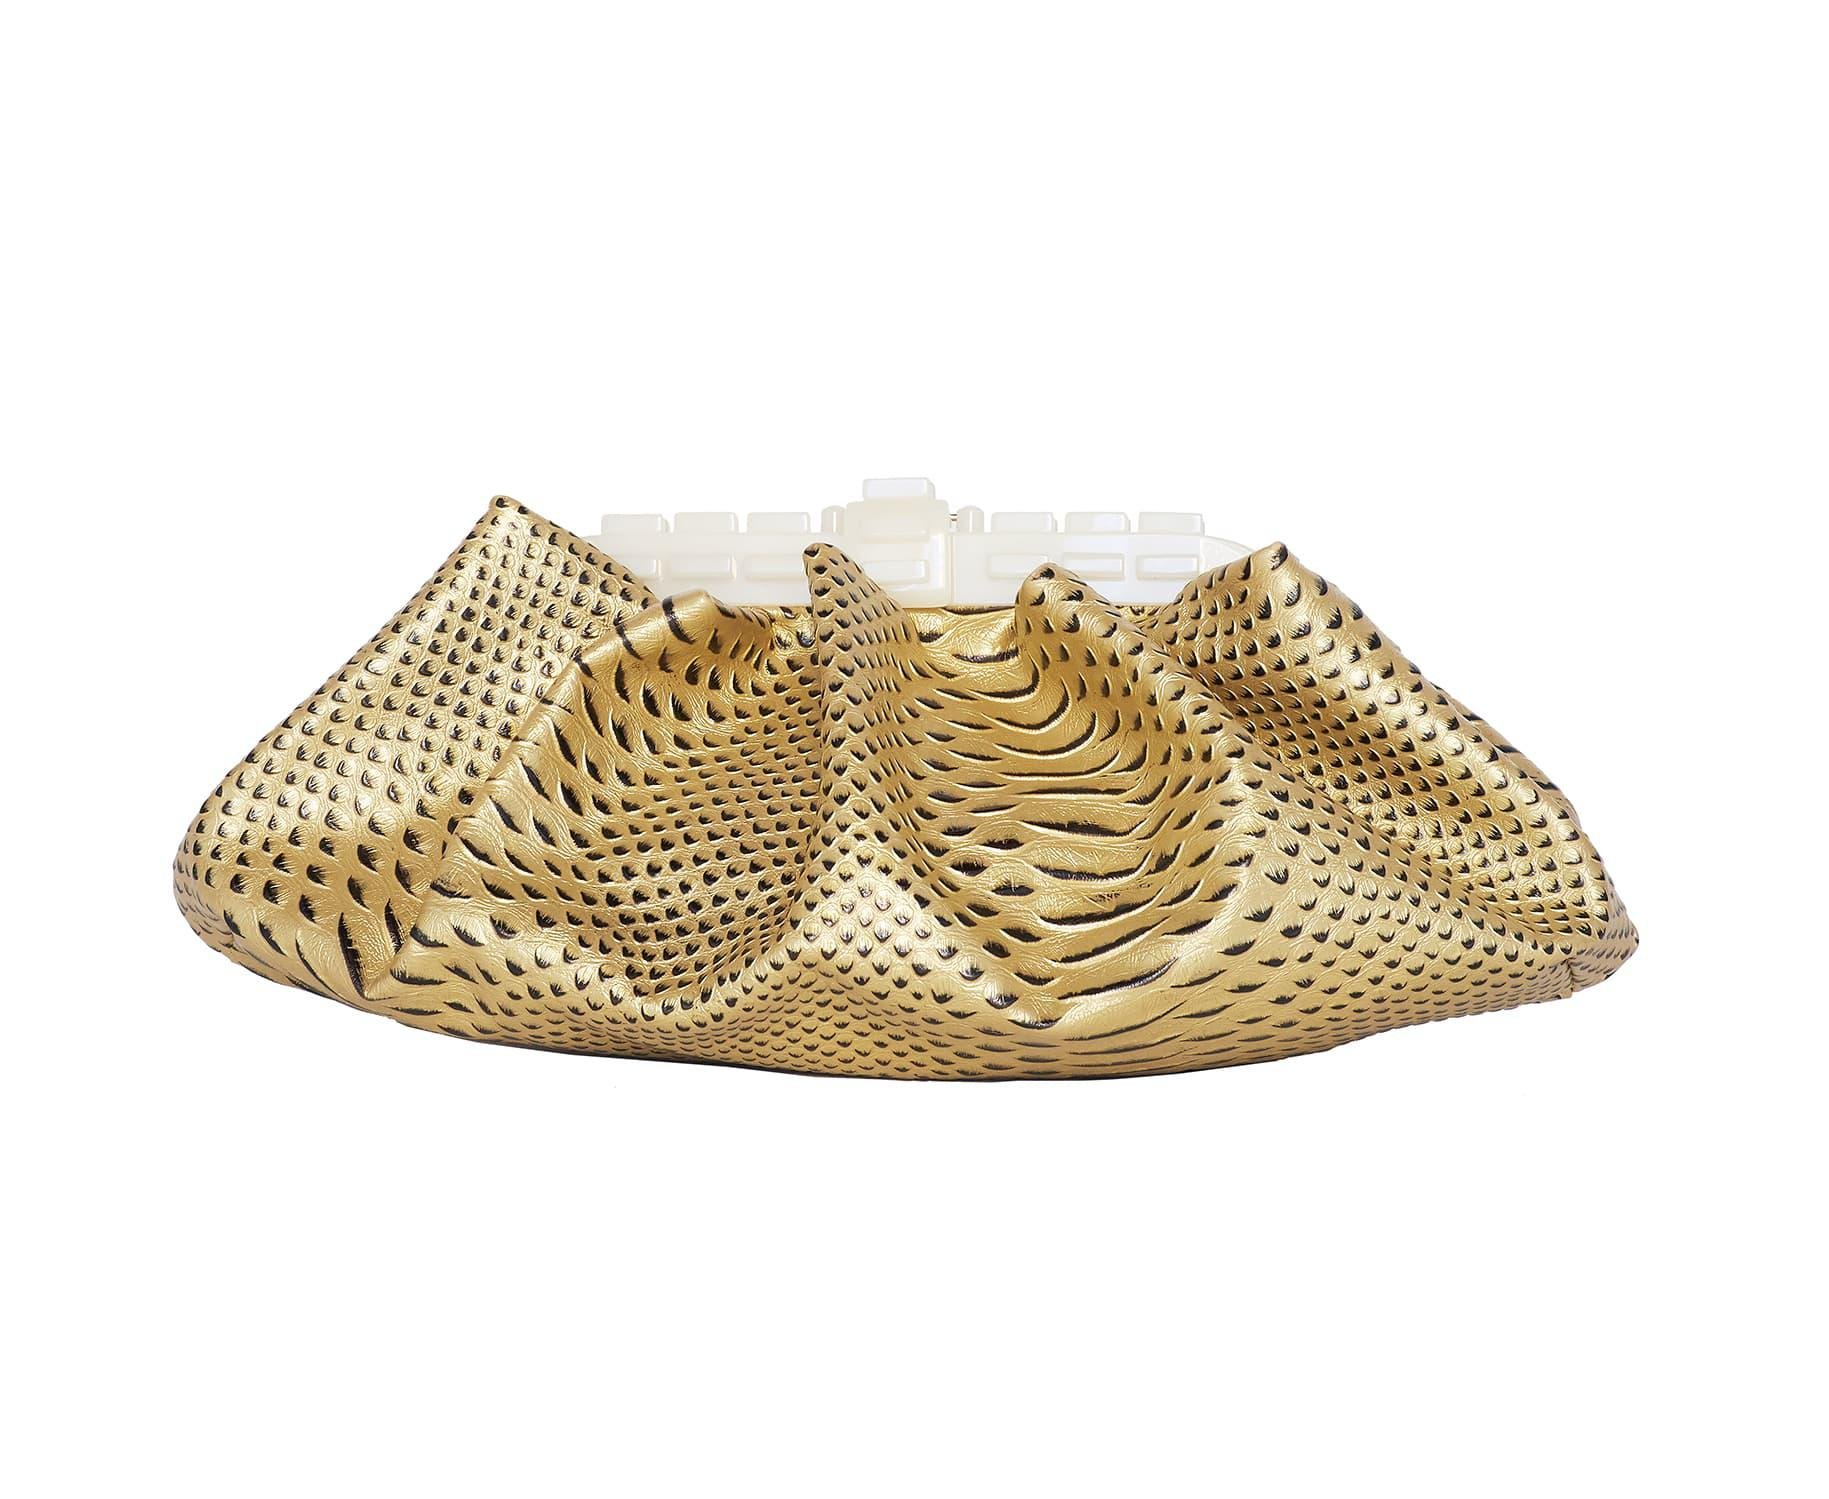 JERRY GOLD EMBOSSED SNAKE GATHERED CLUTCH BAG